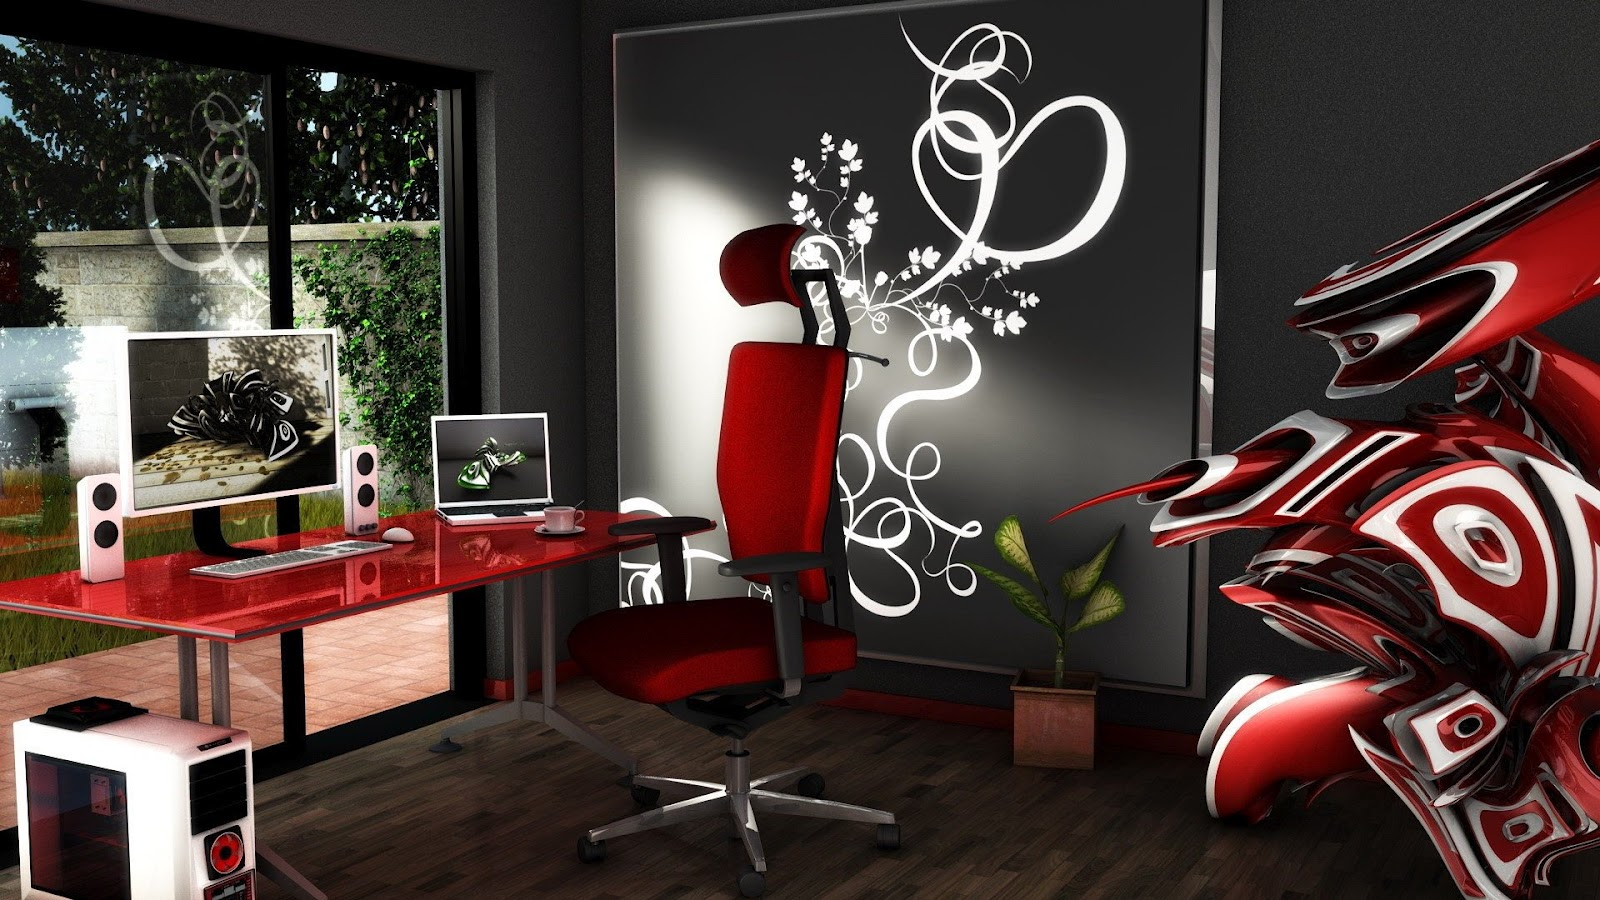 Cool office wallpaper Professional Office Cool Office 3d Design u003eu003e Mystery Wallpaper Cool Office 3d Design Mystery Wallpaper